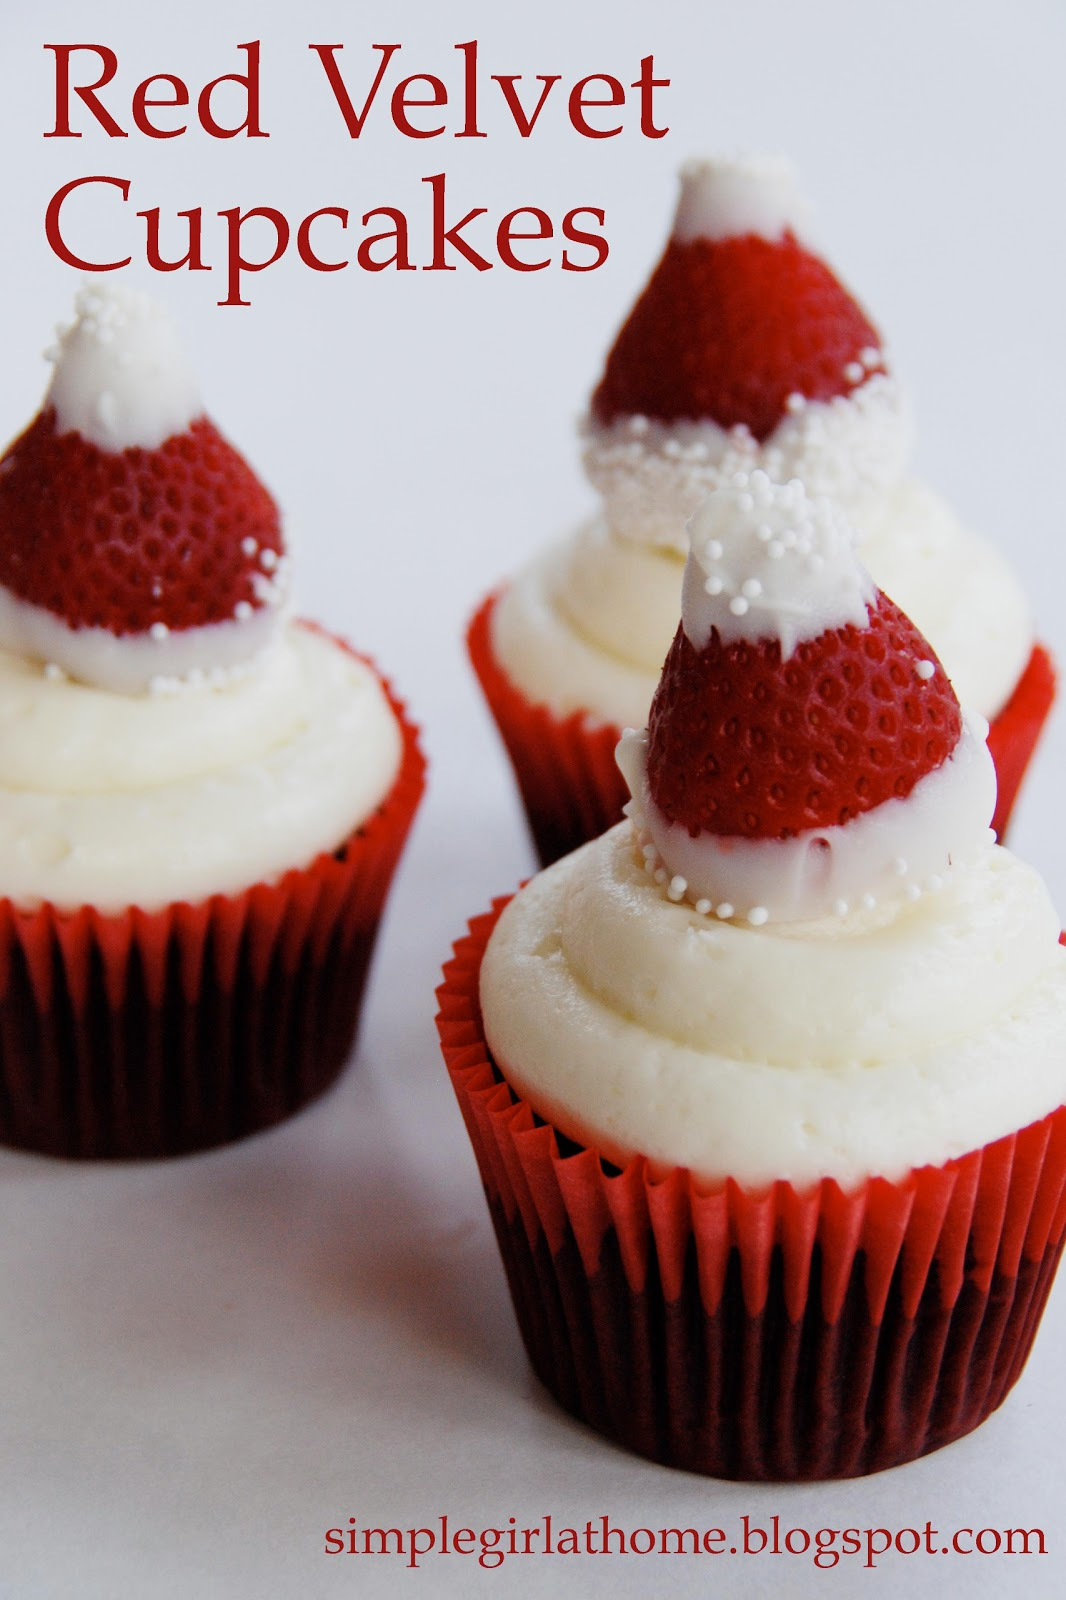 Simple Girl: Red Velvet Cupcakes with Strawberry Santa Hats